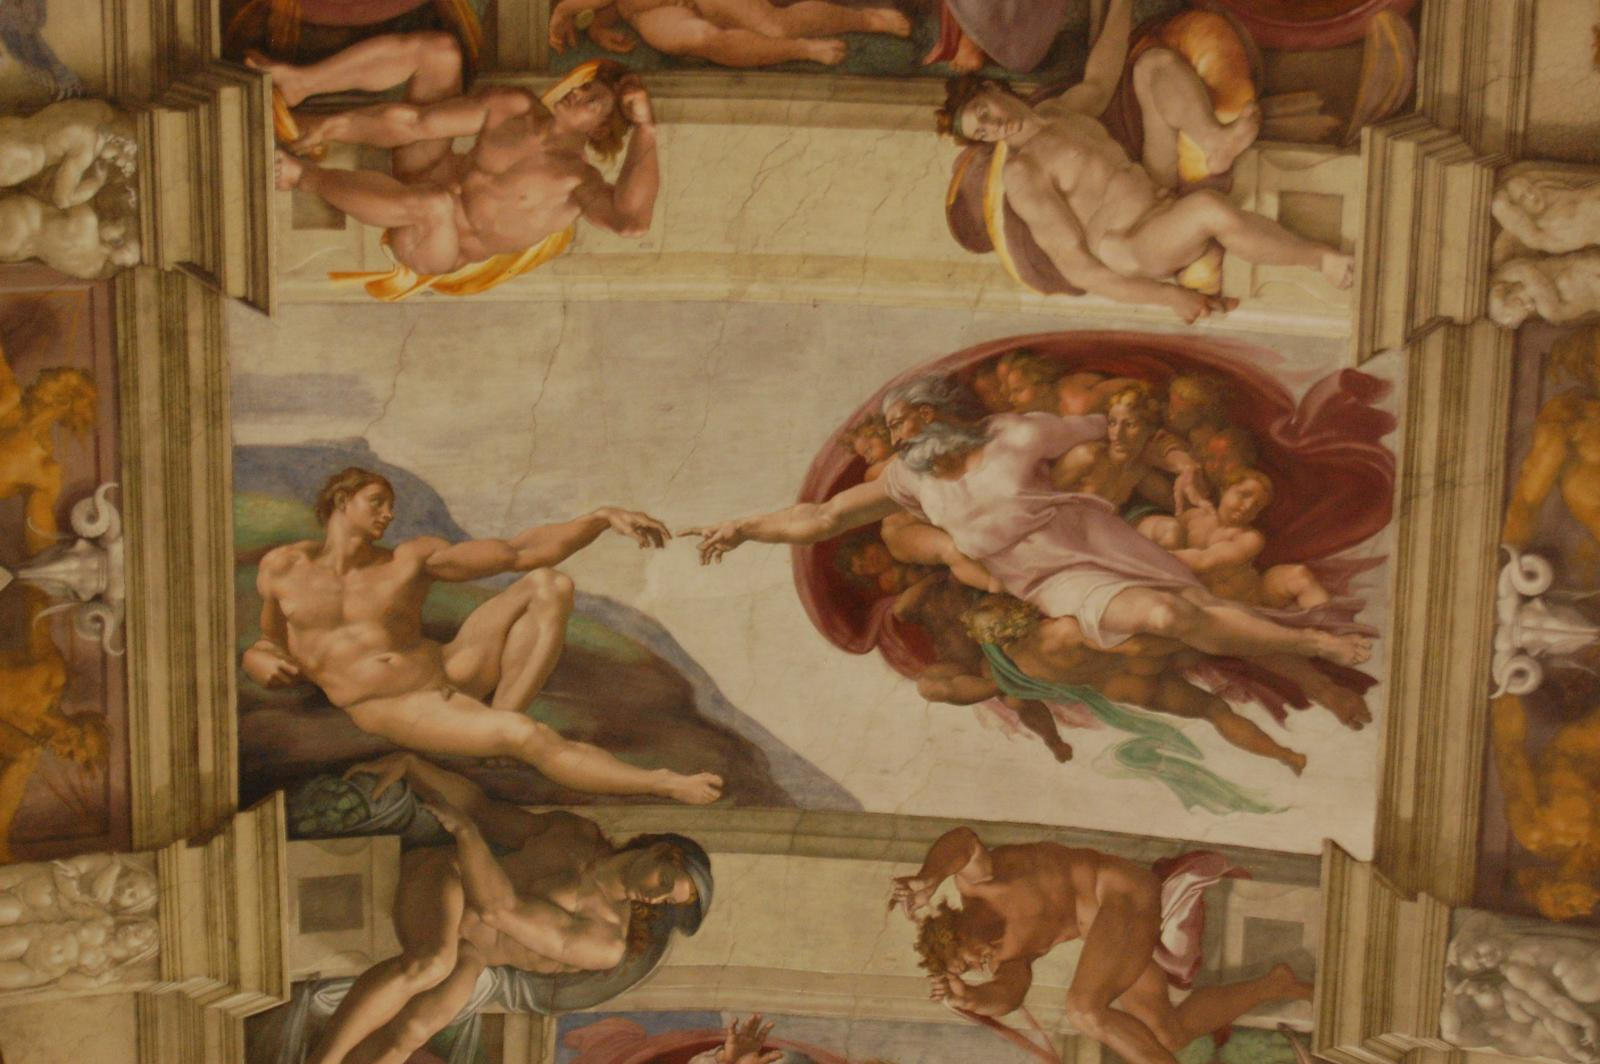 Vaticano - Musei Vaticani - Cappella Sistina - Creation of Adam (that Adam somehow reminds me of a bored man sitting in front of TV, except for those muscles - and that was not description of myself :-)